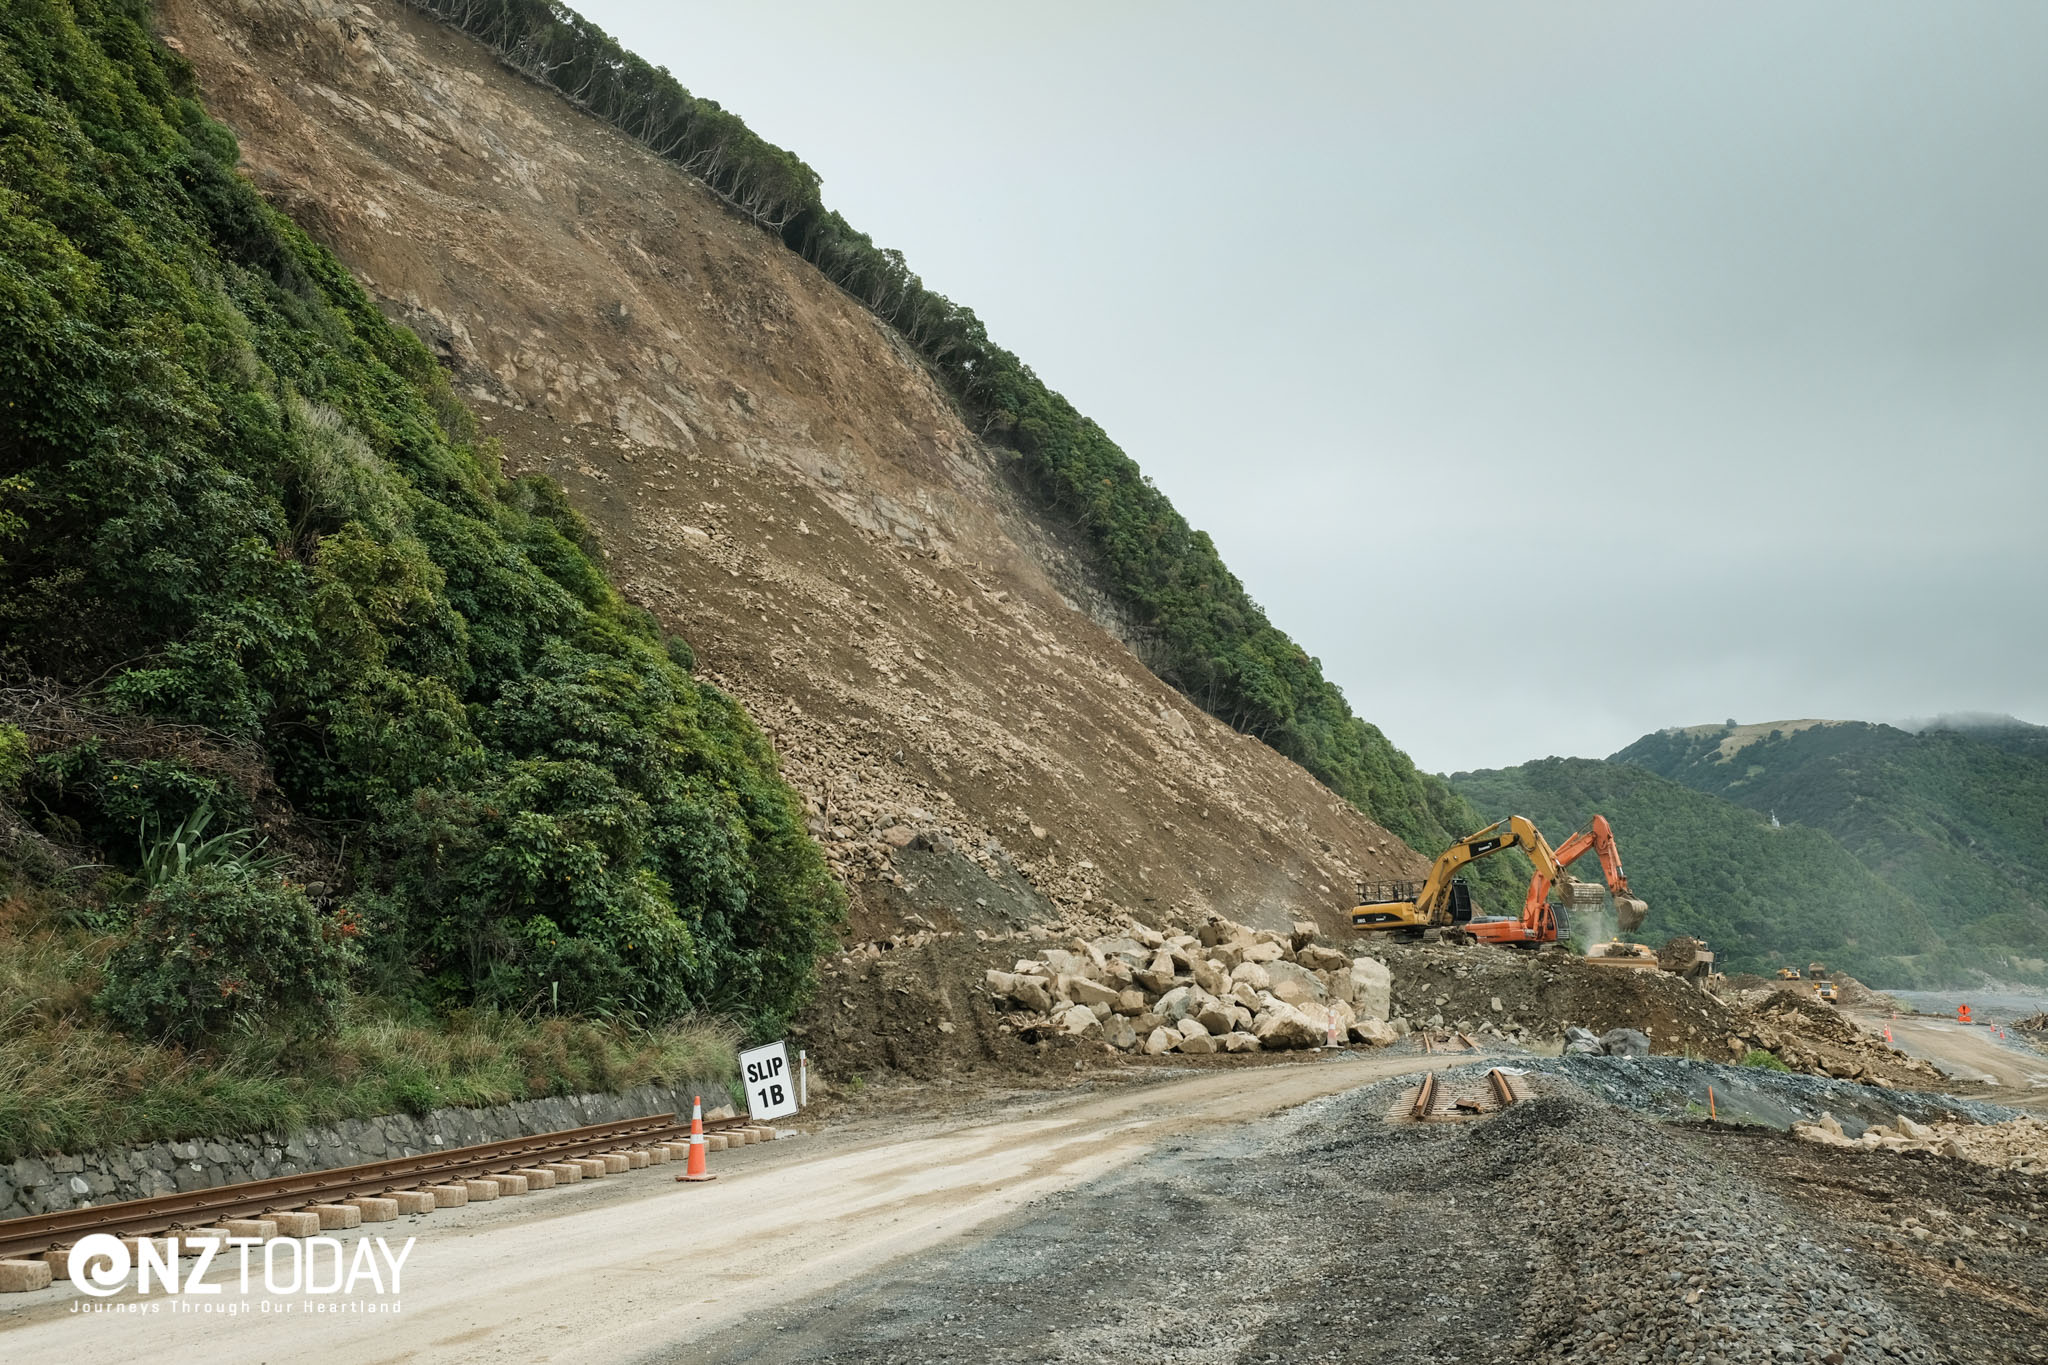 'Slip 1 revisited' is a good illustration of how the rock has been cleared and the slip stabilised. The highway is being rebuilt at this point, closer to the beach